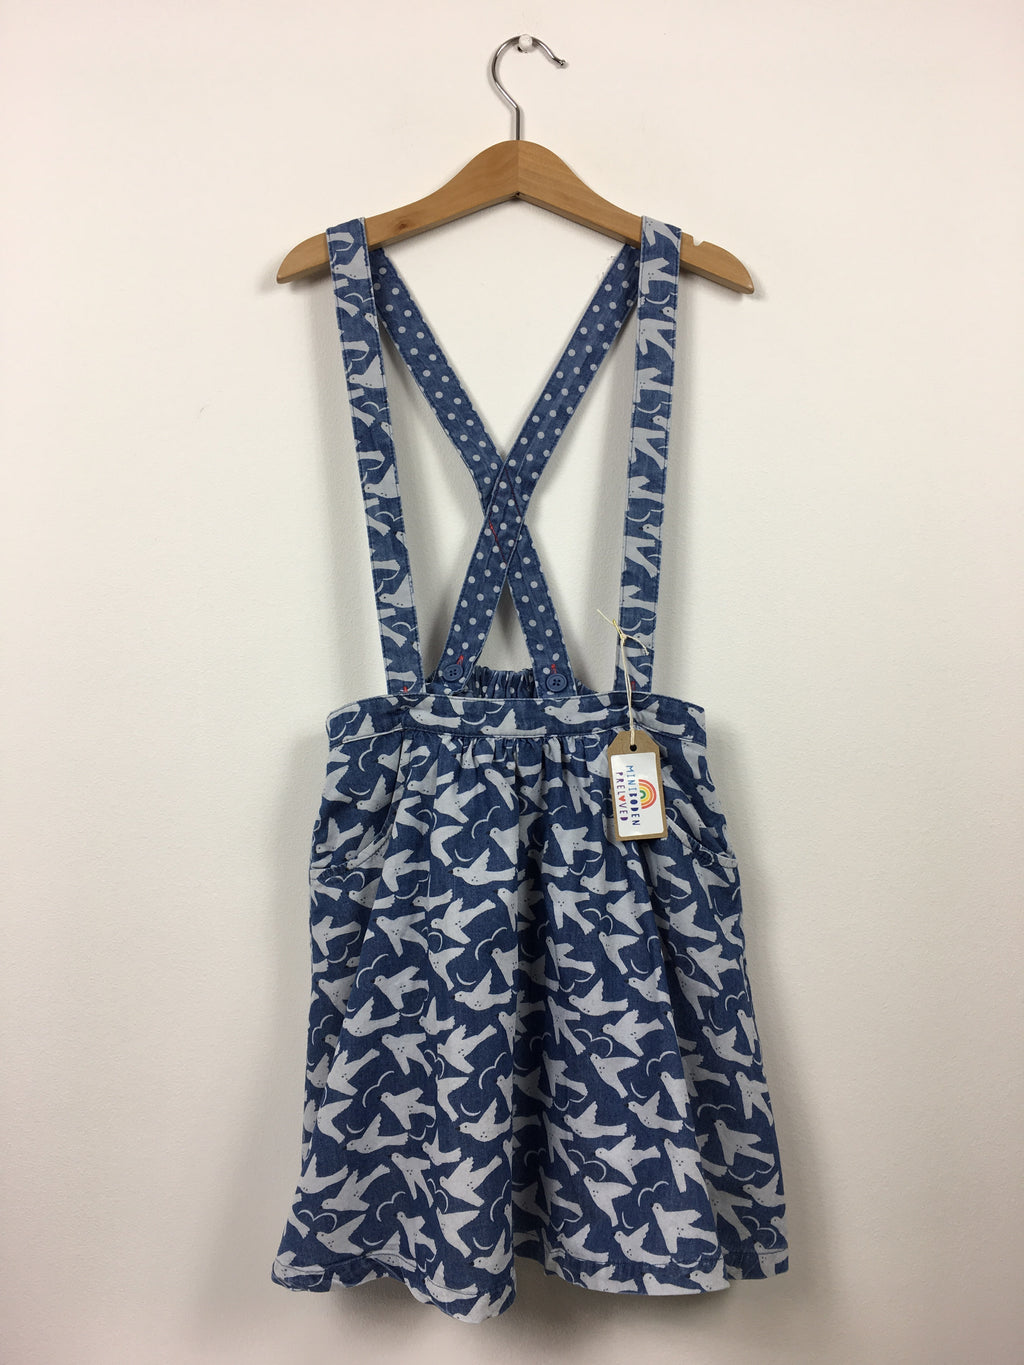 Blue Swallow Print Skirt With Braces (9-10 Years)